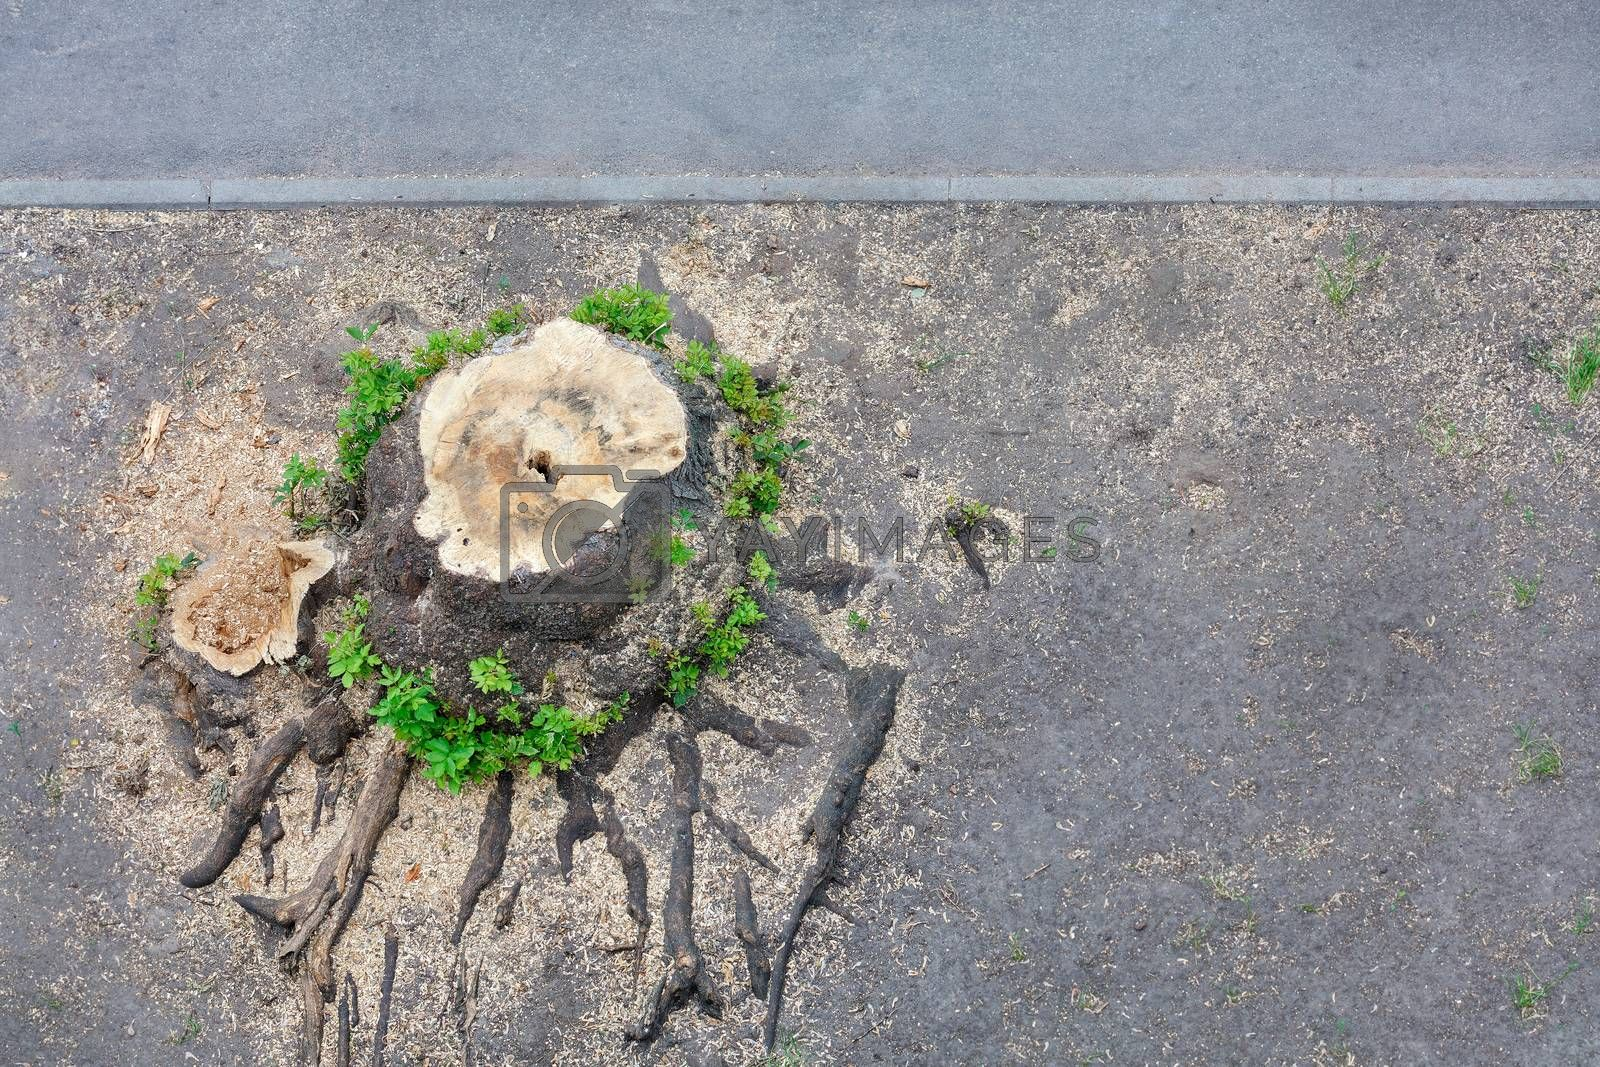 Large rotten stump near the sidewalk, texture of the roots and fibers of an old stump around which young shoots grow, copy space, nature concept, view from above.